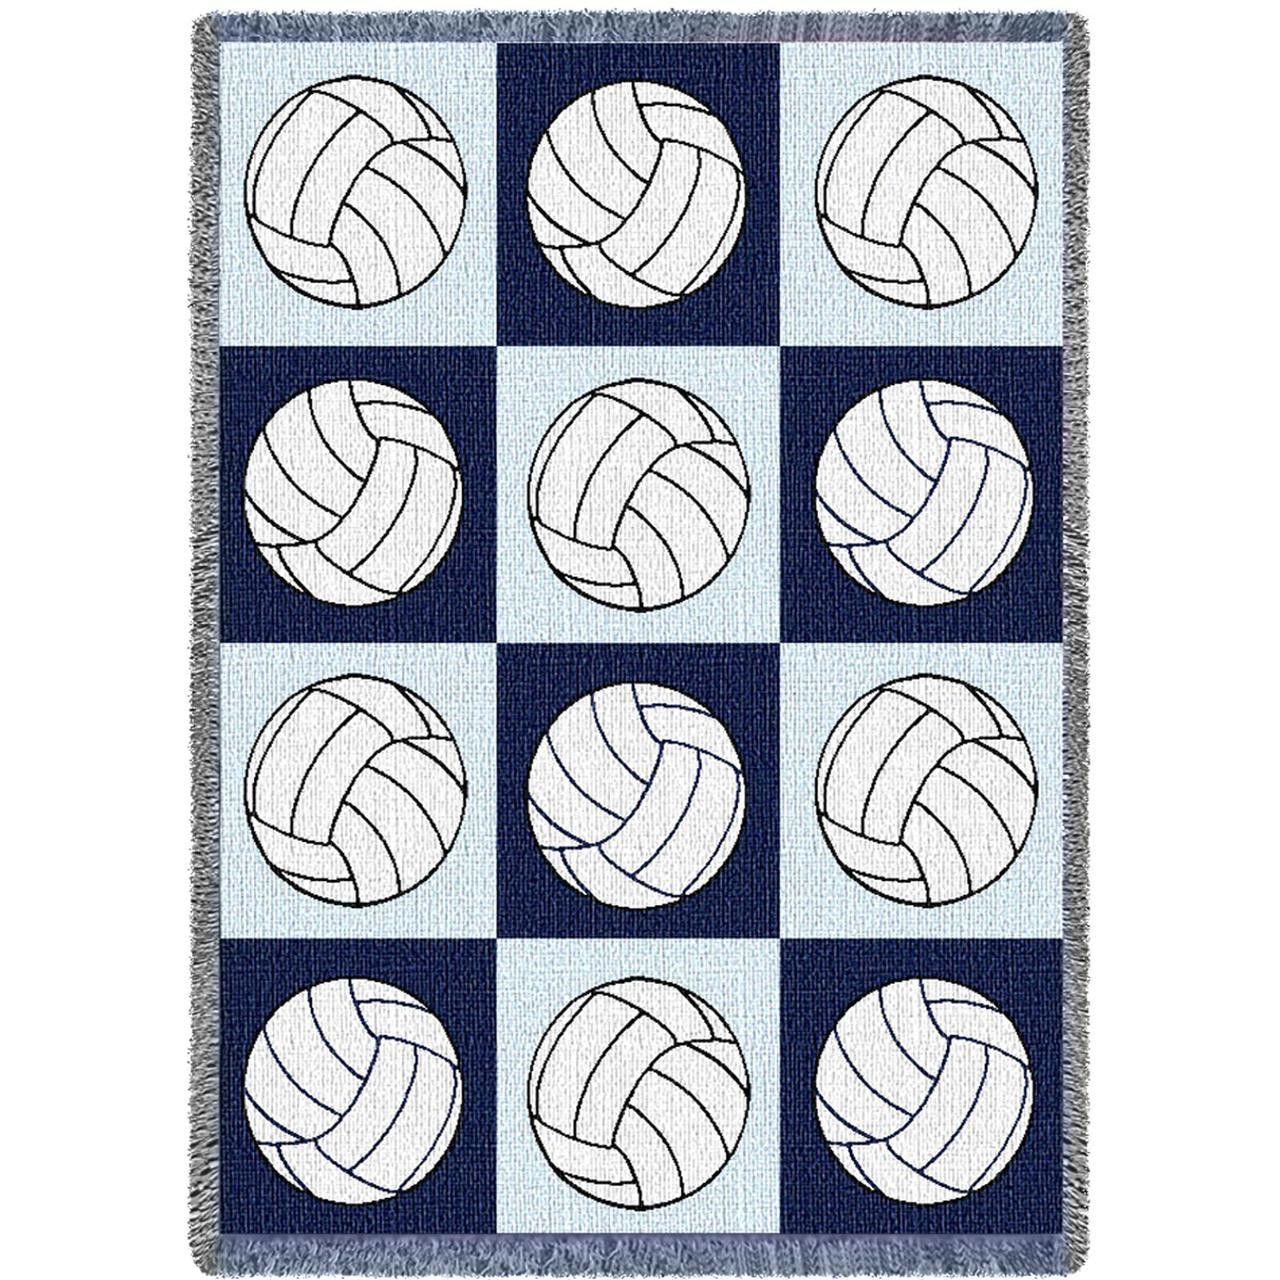 Volleyballs Art Tapestry Throw. Volleyball RoomRoom ...